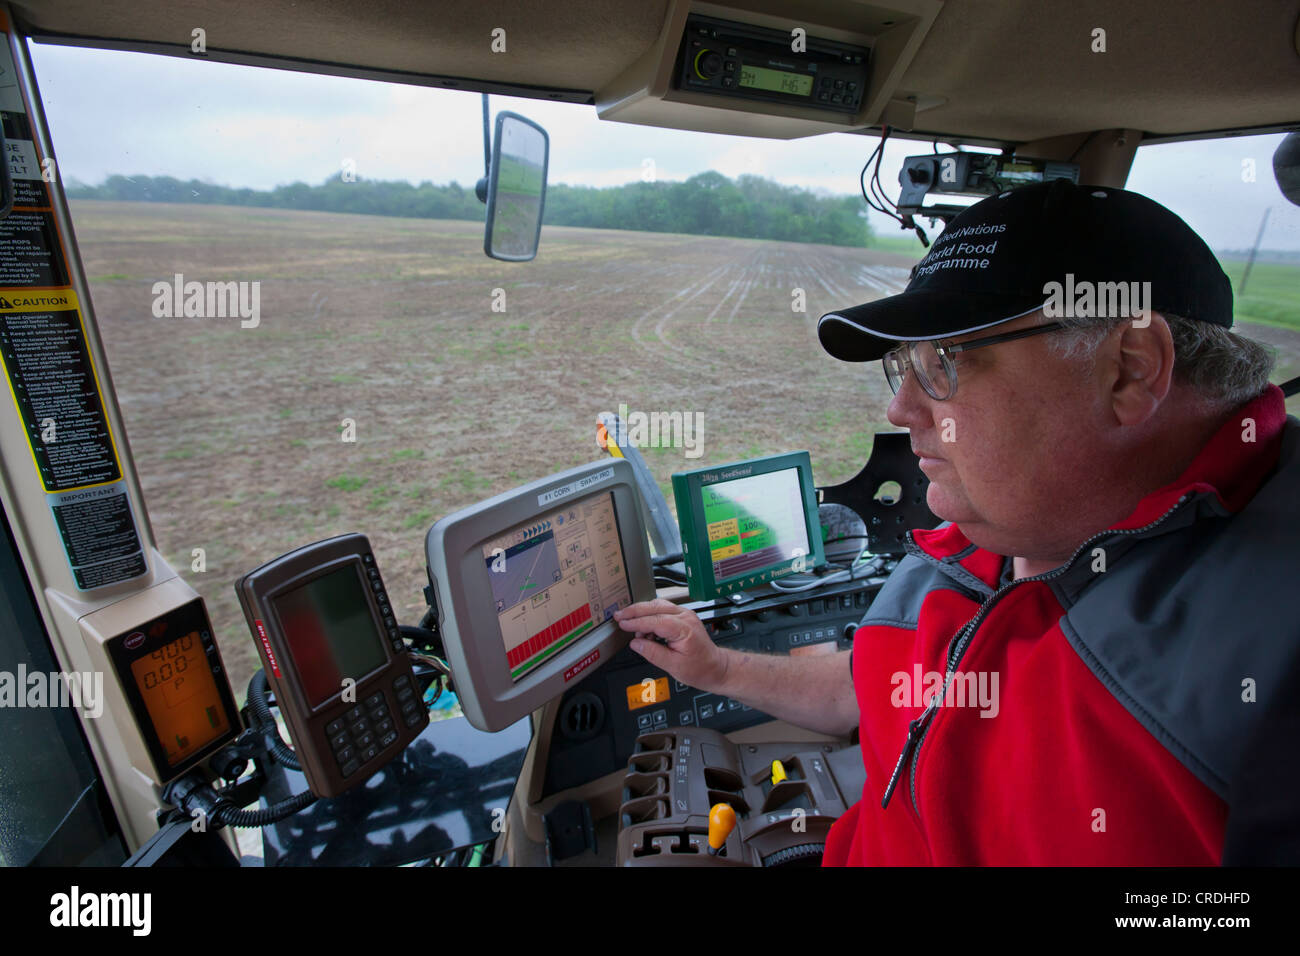 Farmer Inside Combine Cab Using Gps And Other Technology